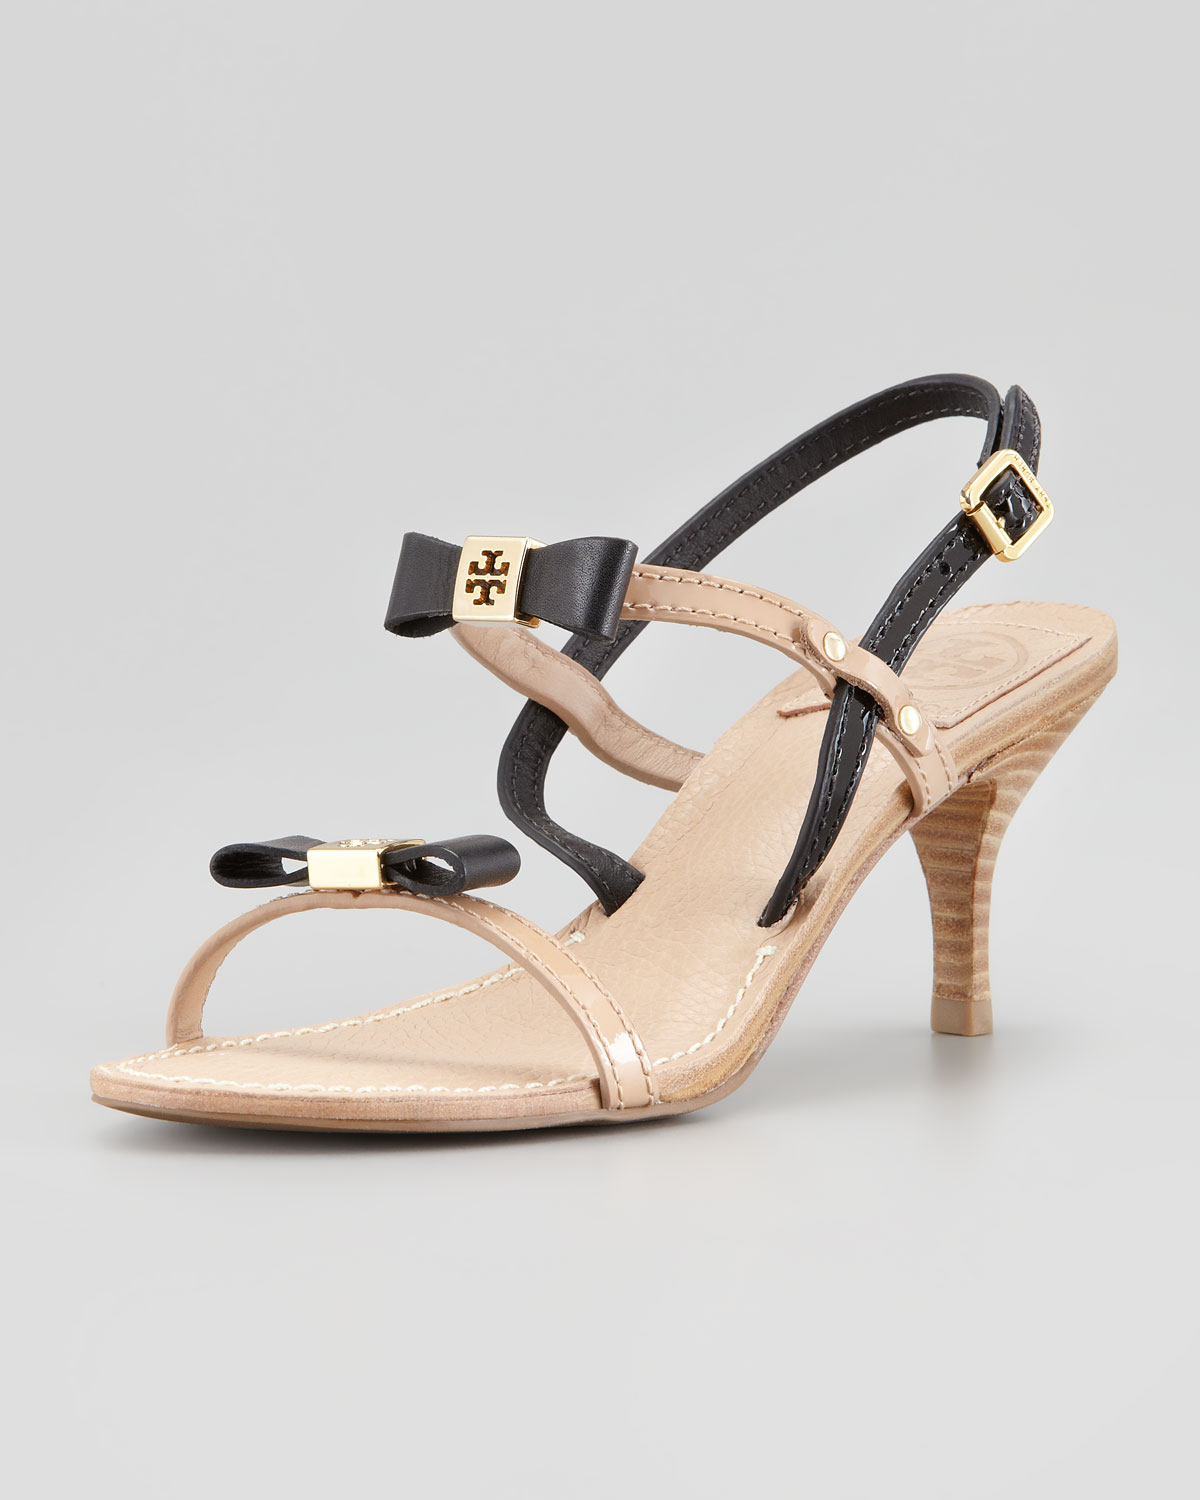 Tory Burch Kailey Wedge Thong Sandal in Natural - Lyst